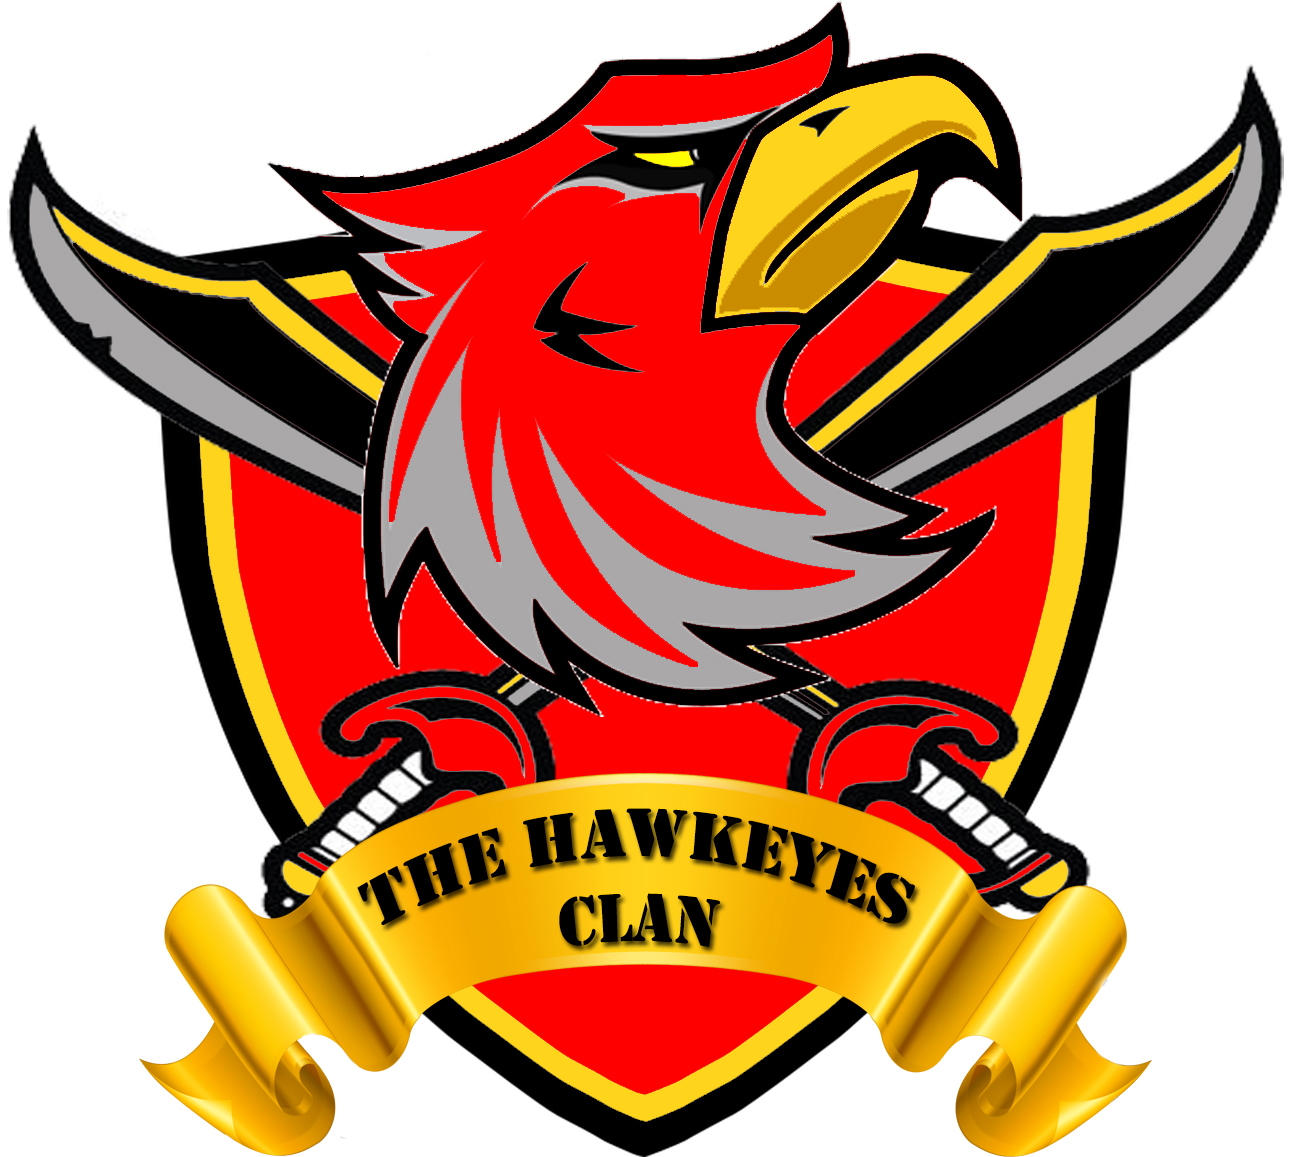 The Hawkeys Clan